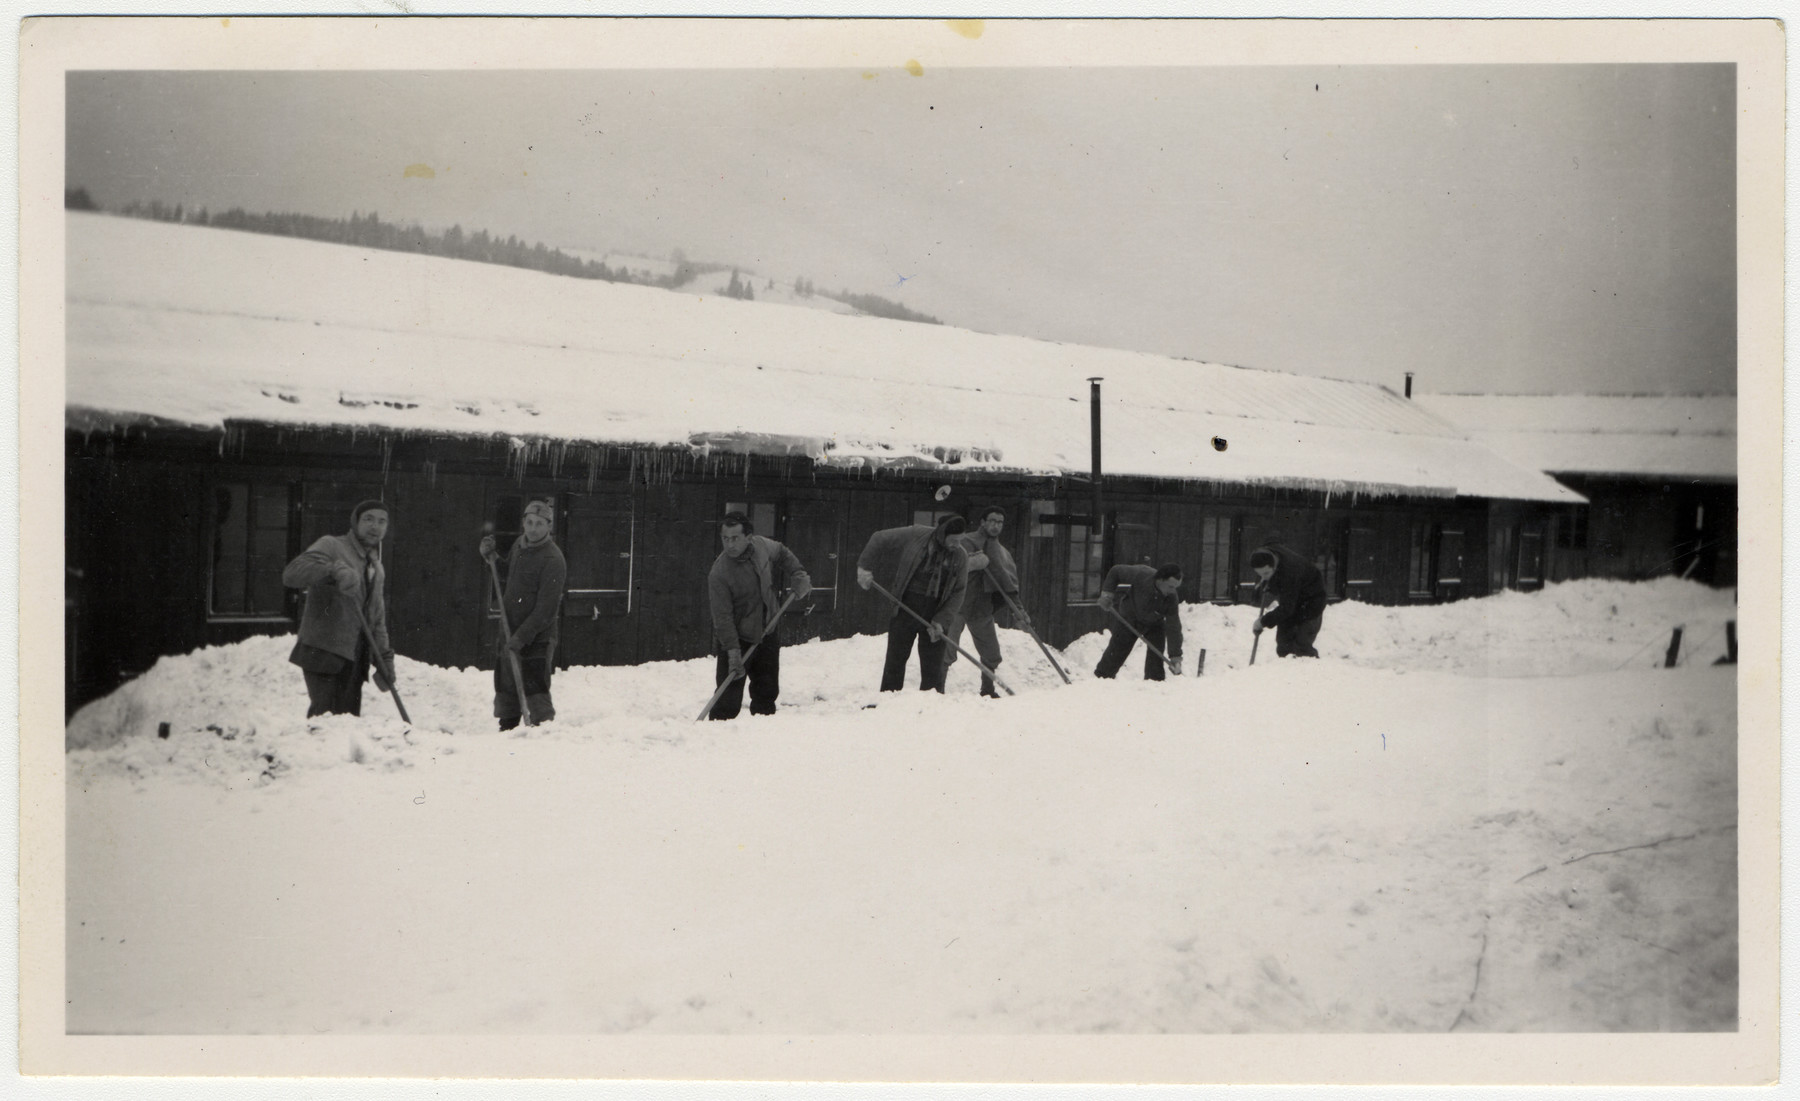 Jewish internees shovel snow in front of the barracks of an unidentified Swiss labor camp.